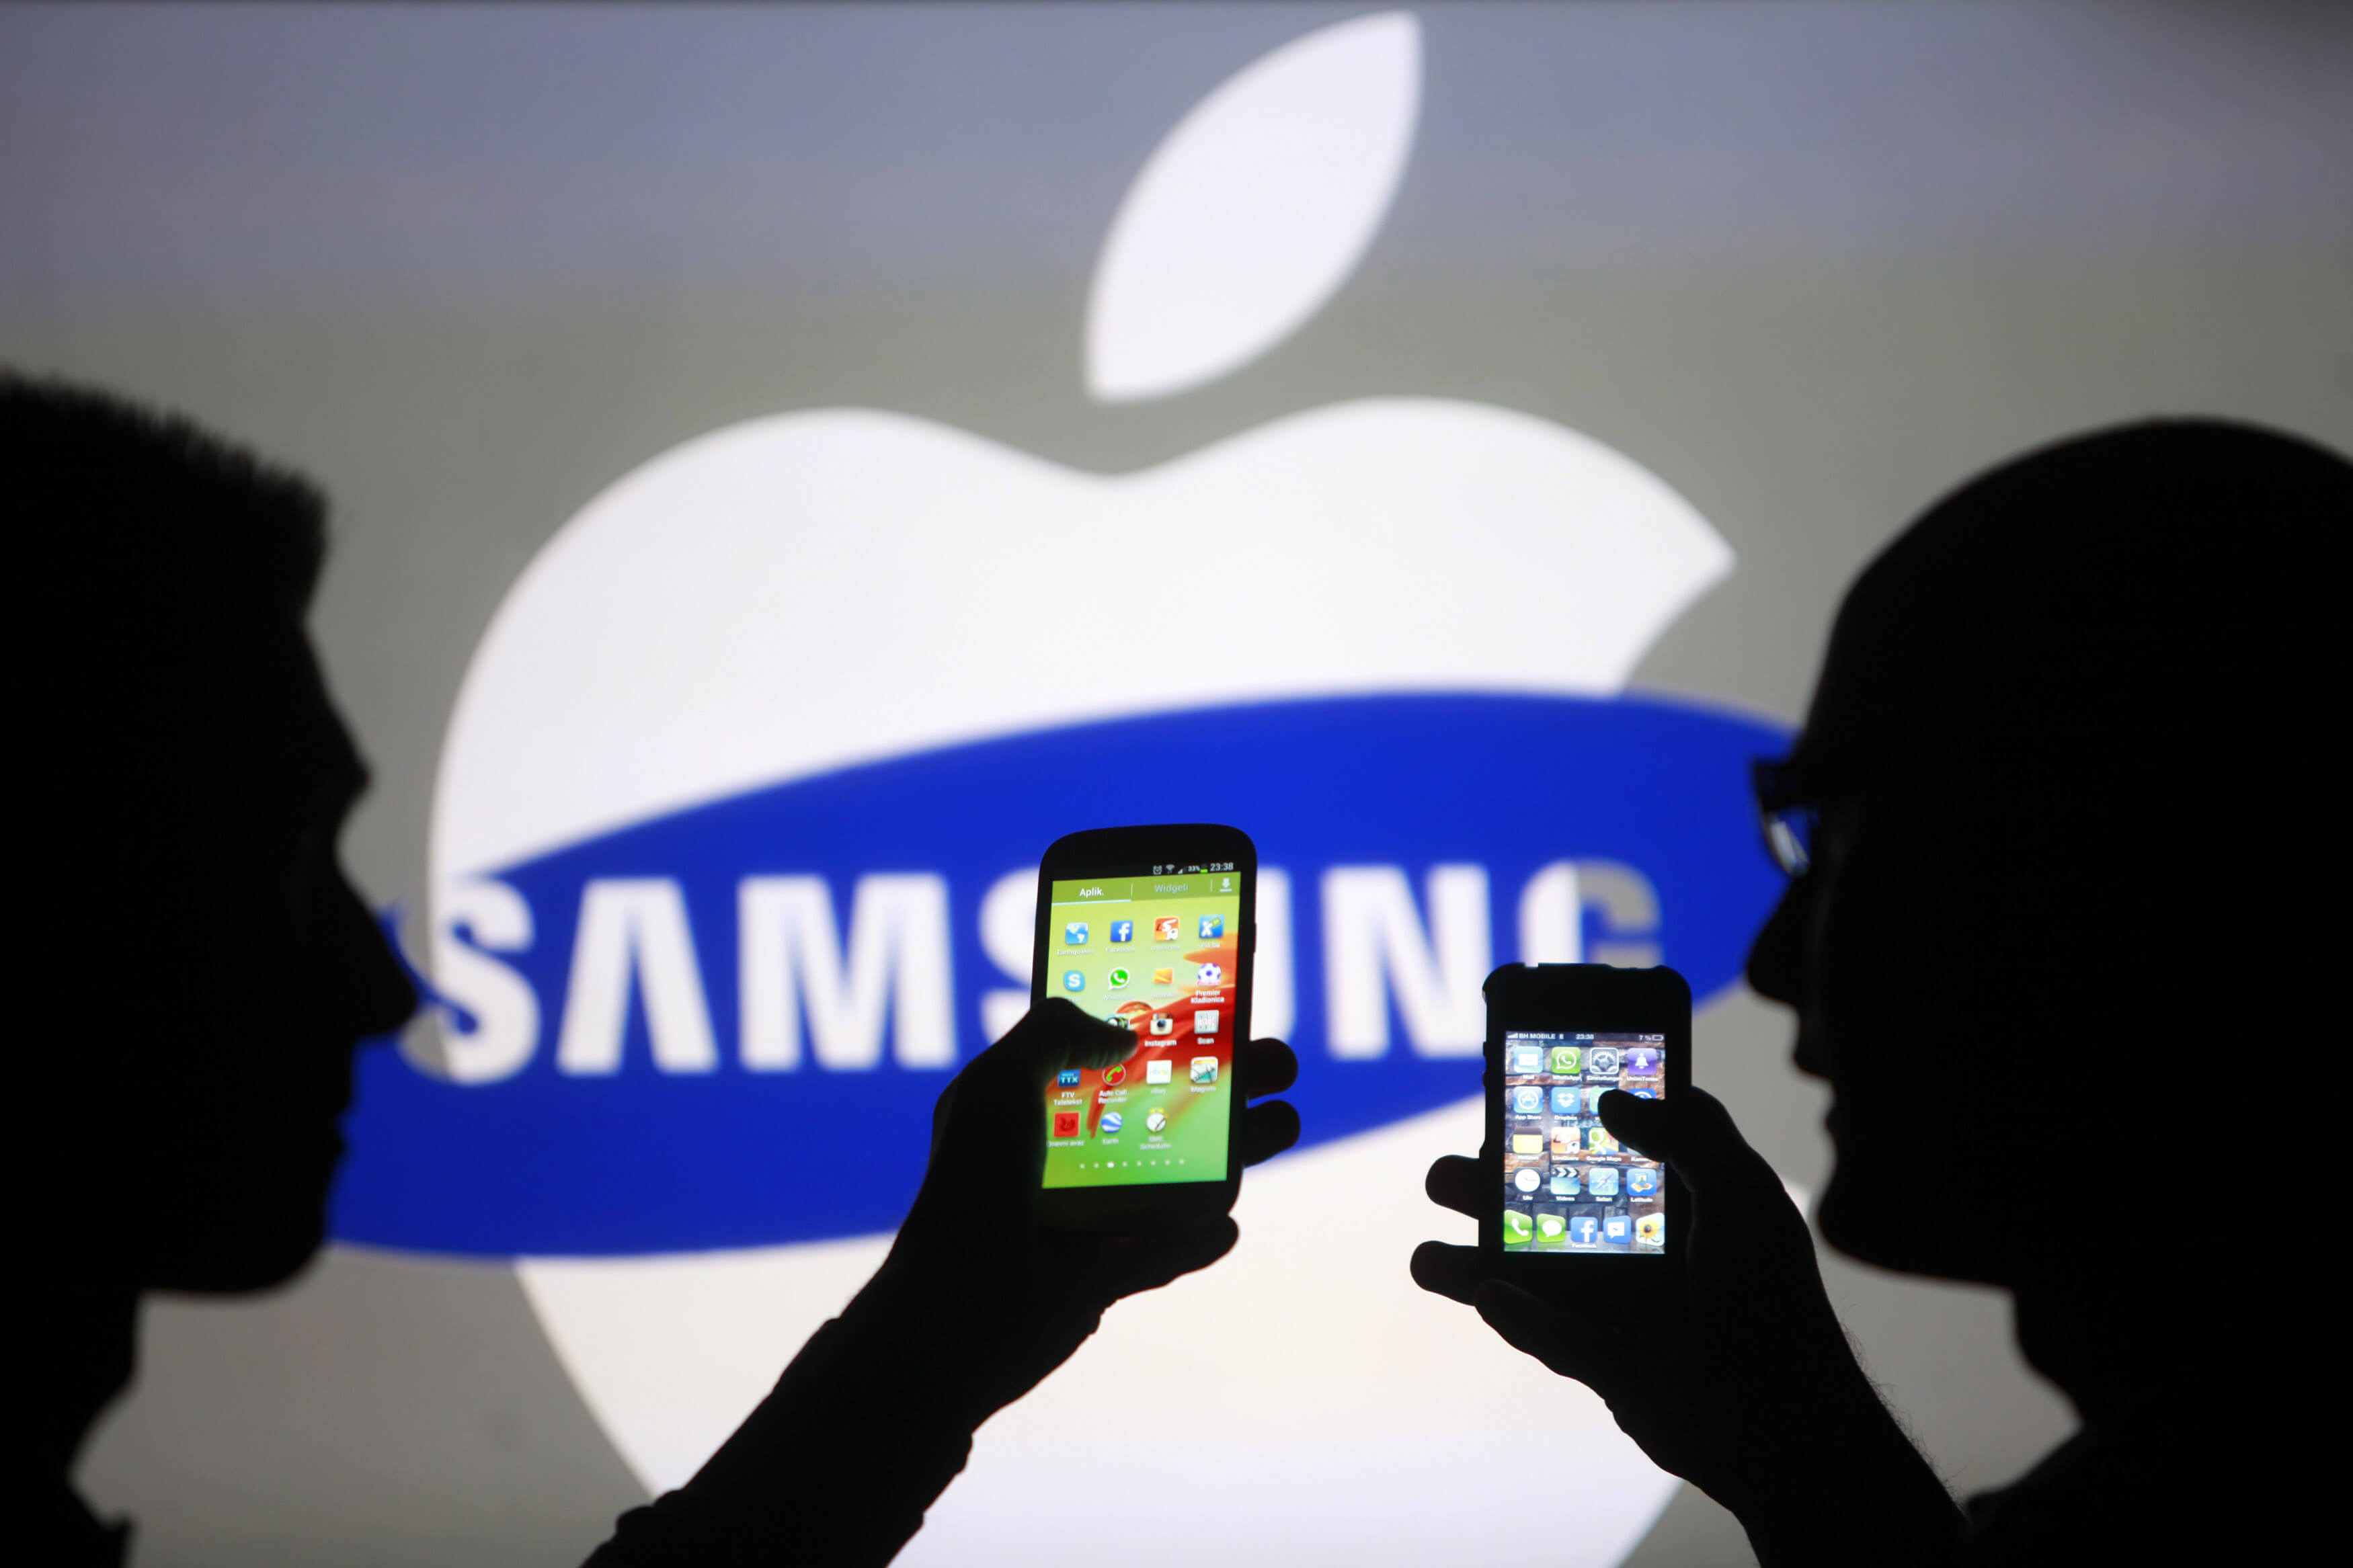 Things you didn't know about Apple and samsung found common ground